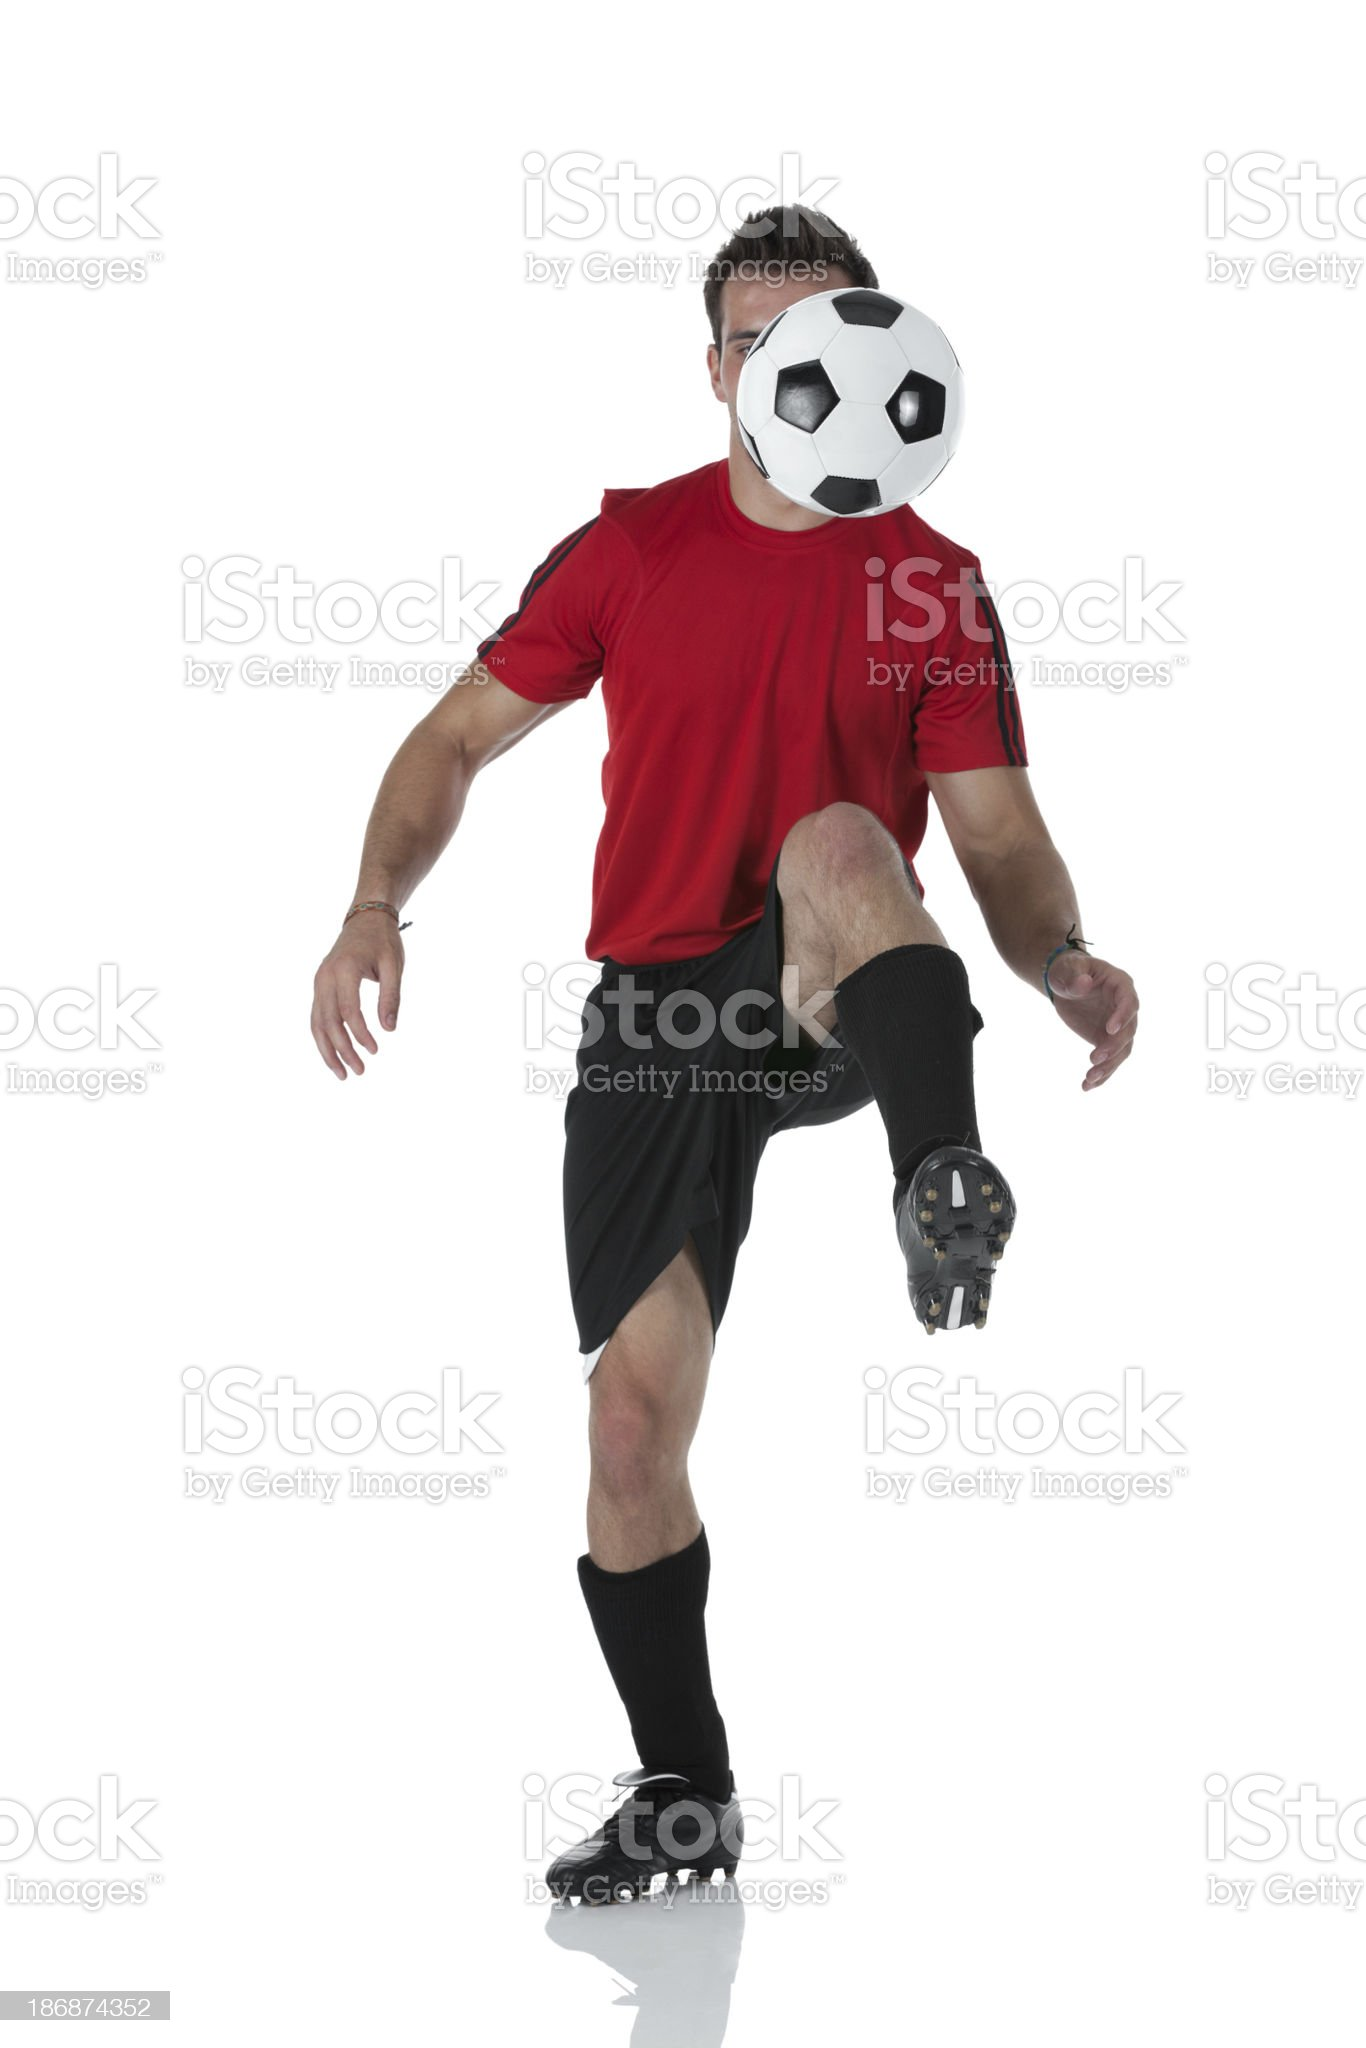 Soccer player practicing royalty-free stock photo